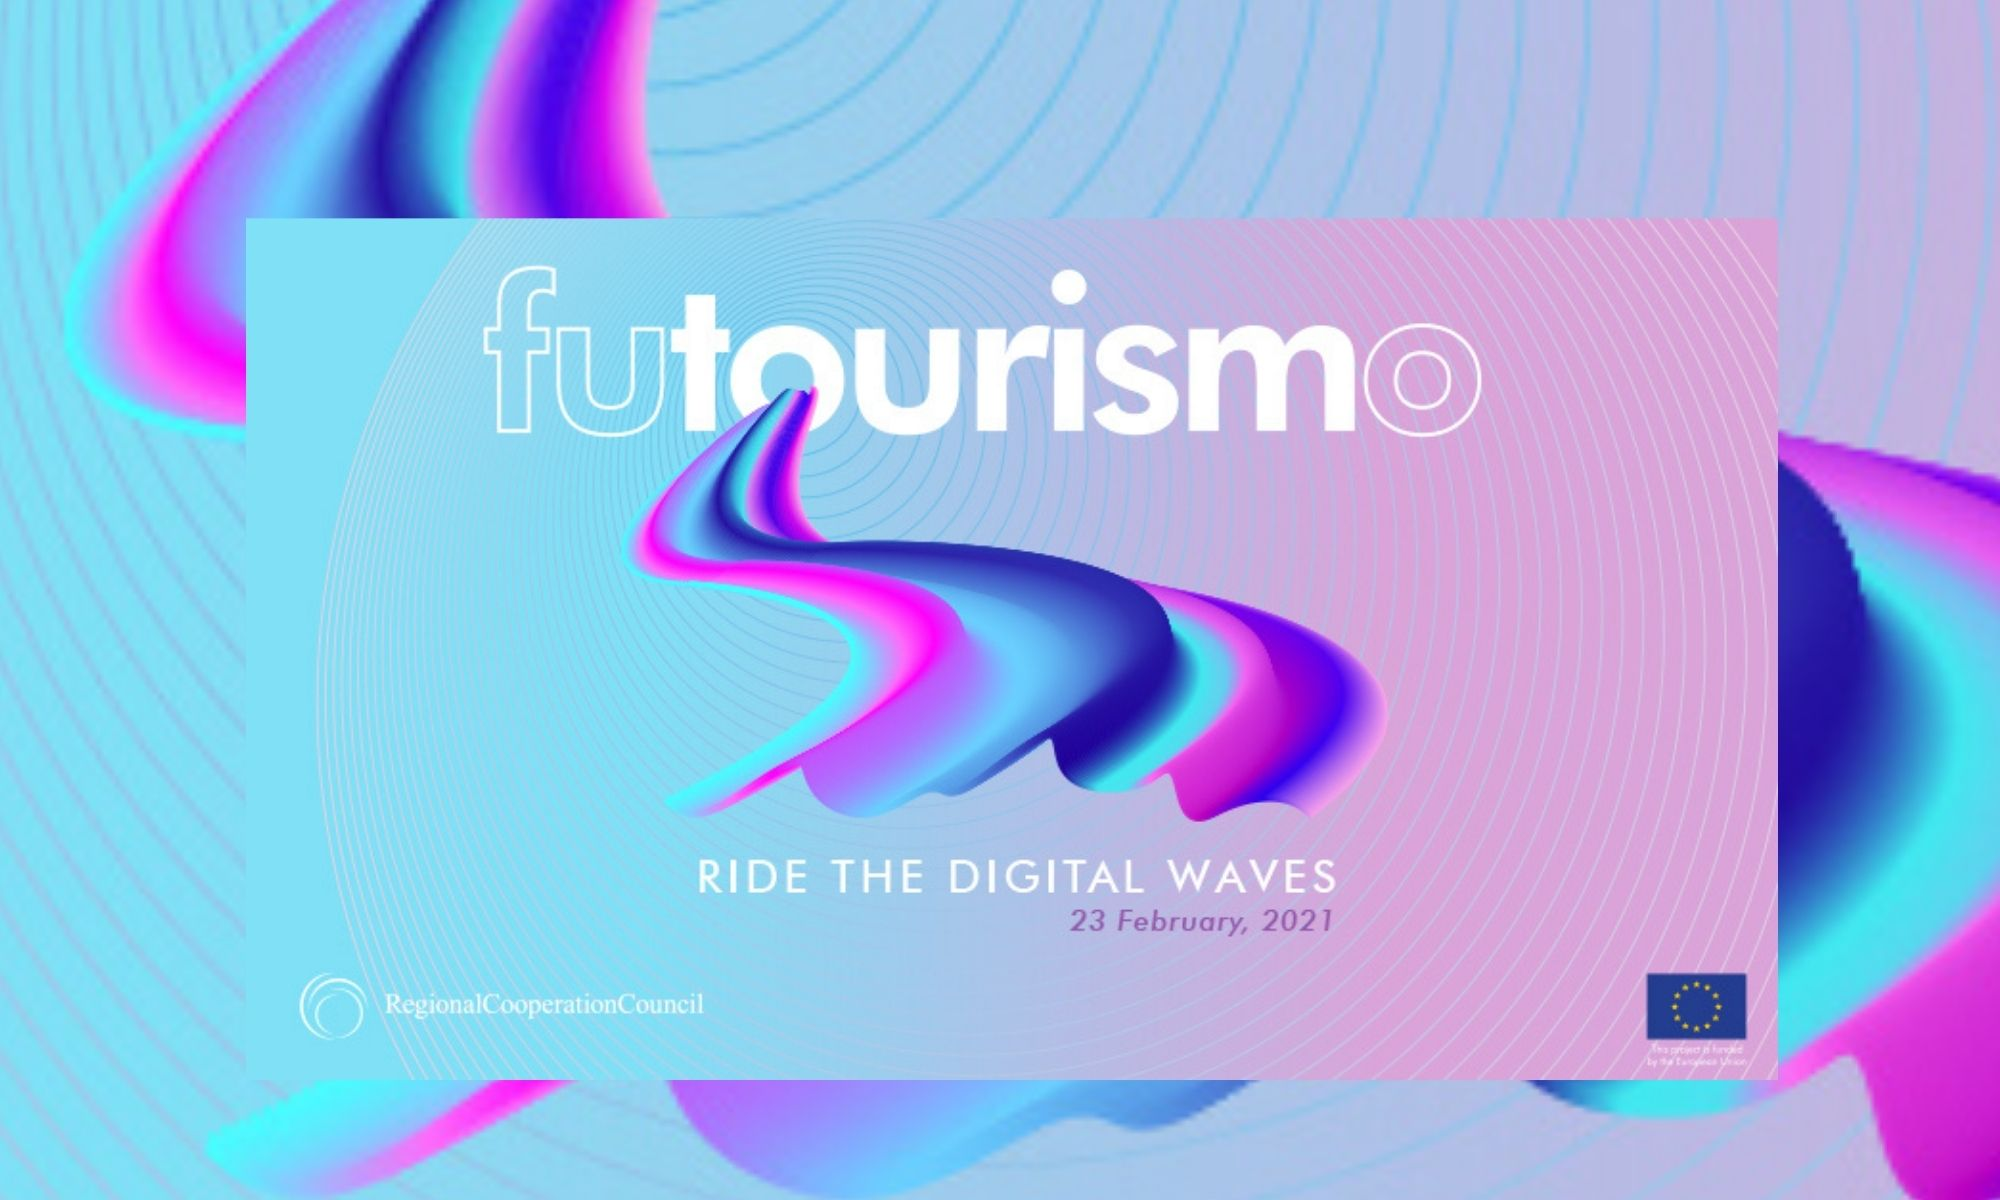 Western Balkans FUTOURISMO - a competition for best innovative digital solutions that will help mitigate the negative impact of the COVID-19 pandemic